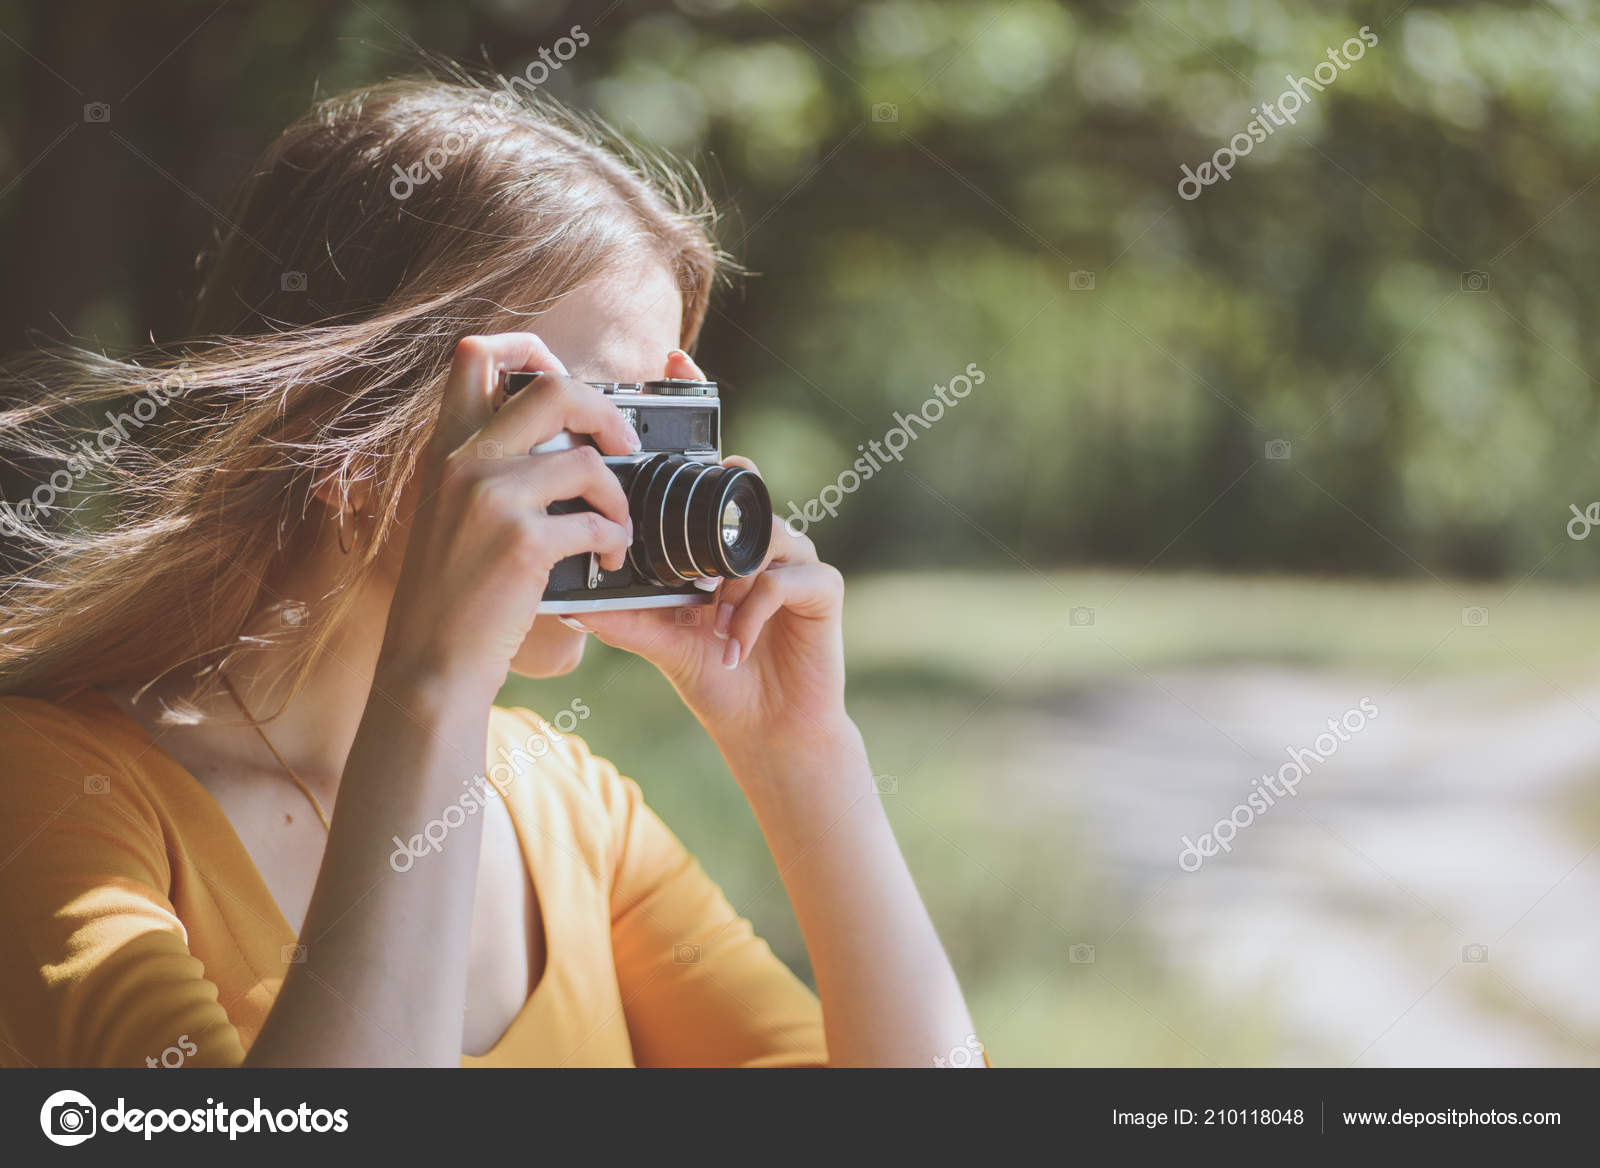 Cute Girl Camera Park — Stock Photo © olegkrugllyak #210118048